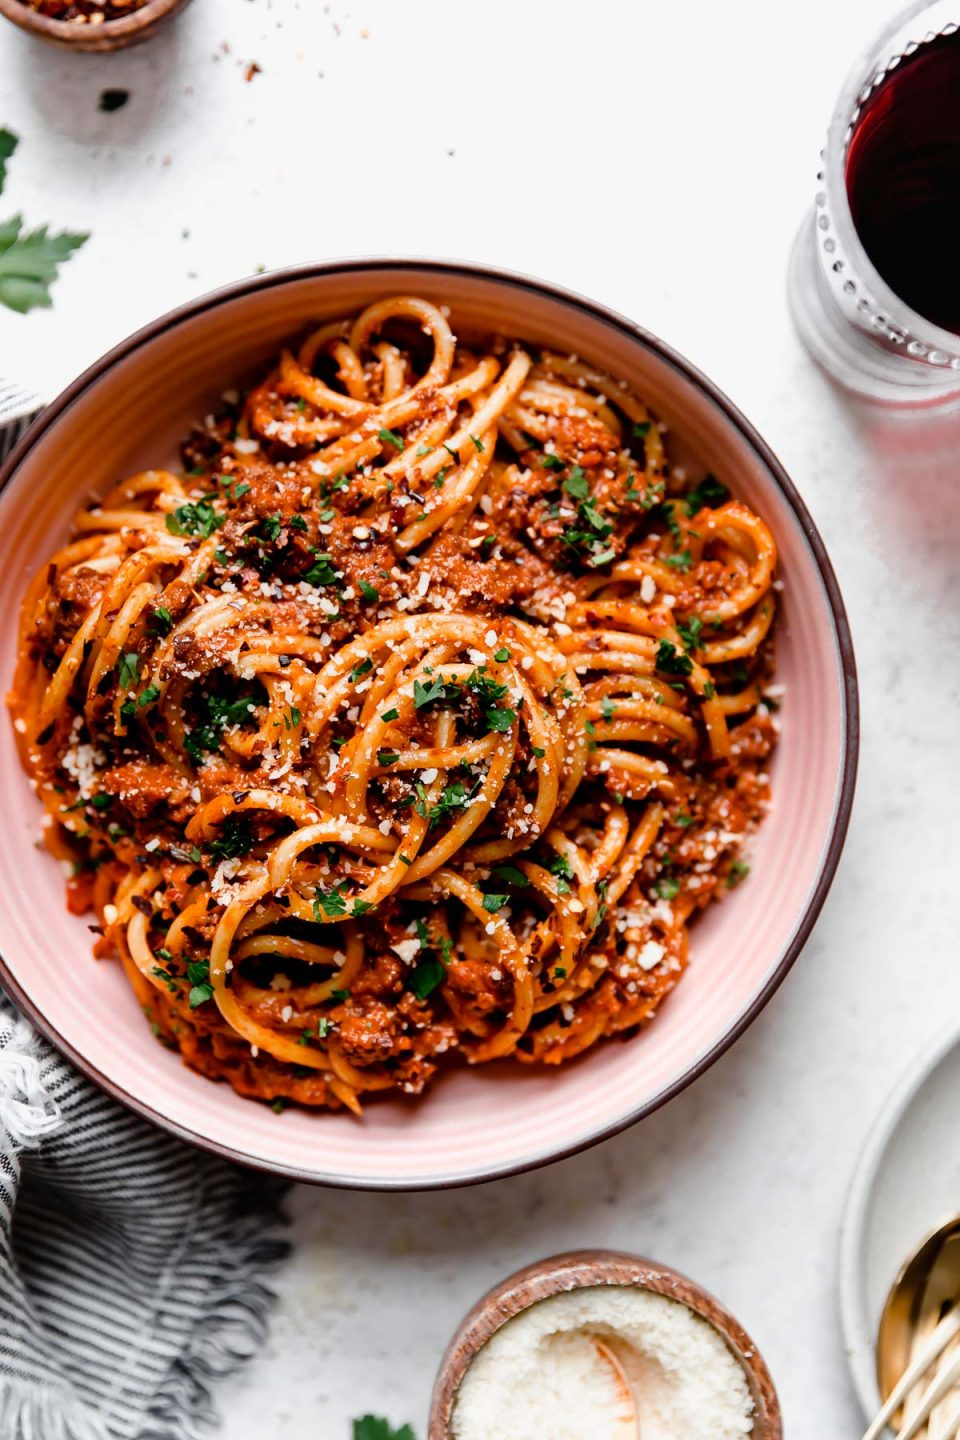 Bolognese sauce tossed into bucatini noodles, served in a pink pasta bowl. The pasta bolognese is topped with grated cheese, chopped parsley, & crushed red pepper flakes, & the bowl is surrounded by red wine glasses, and a striped linen.